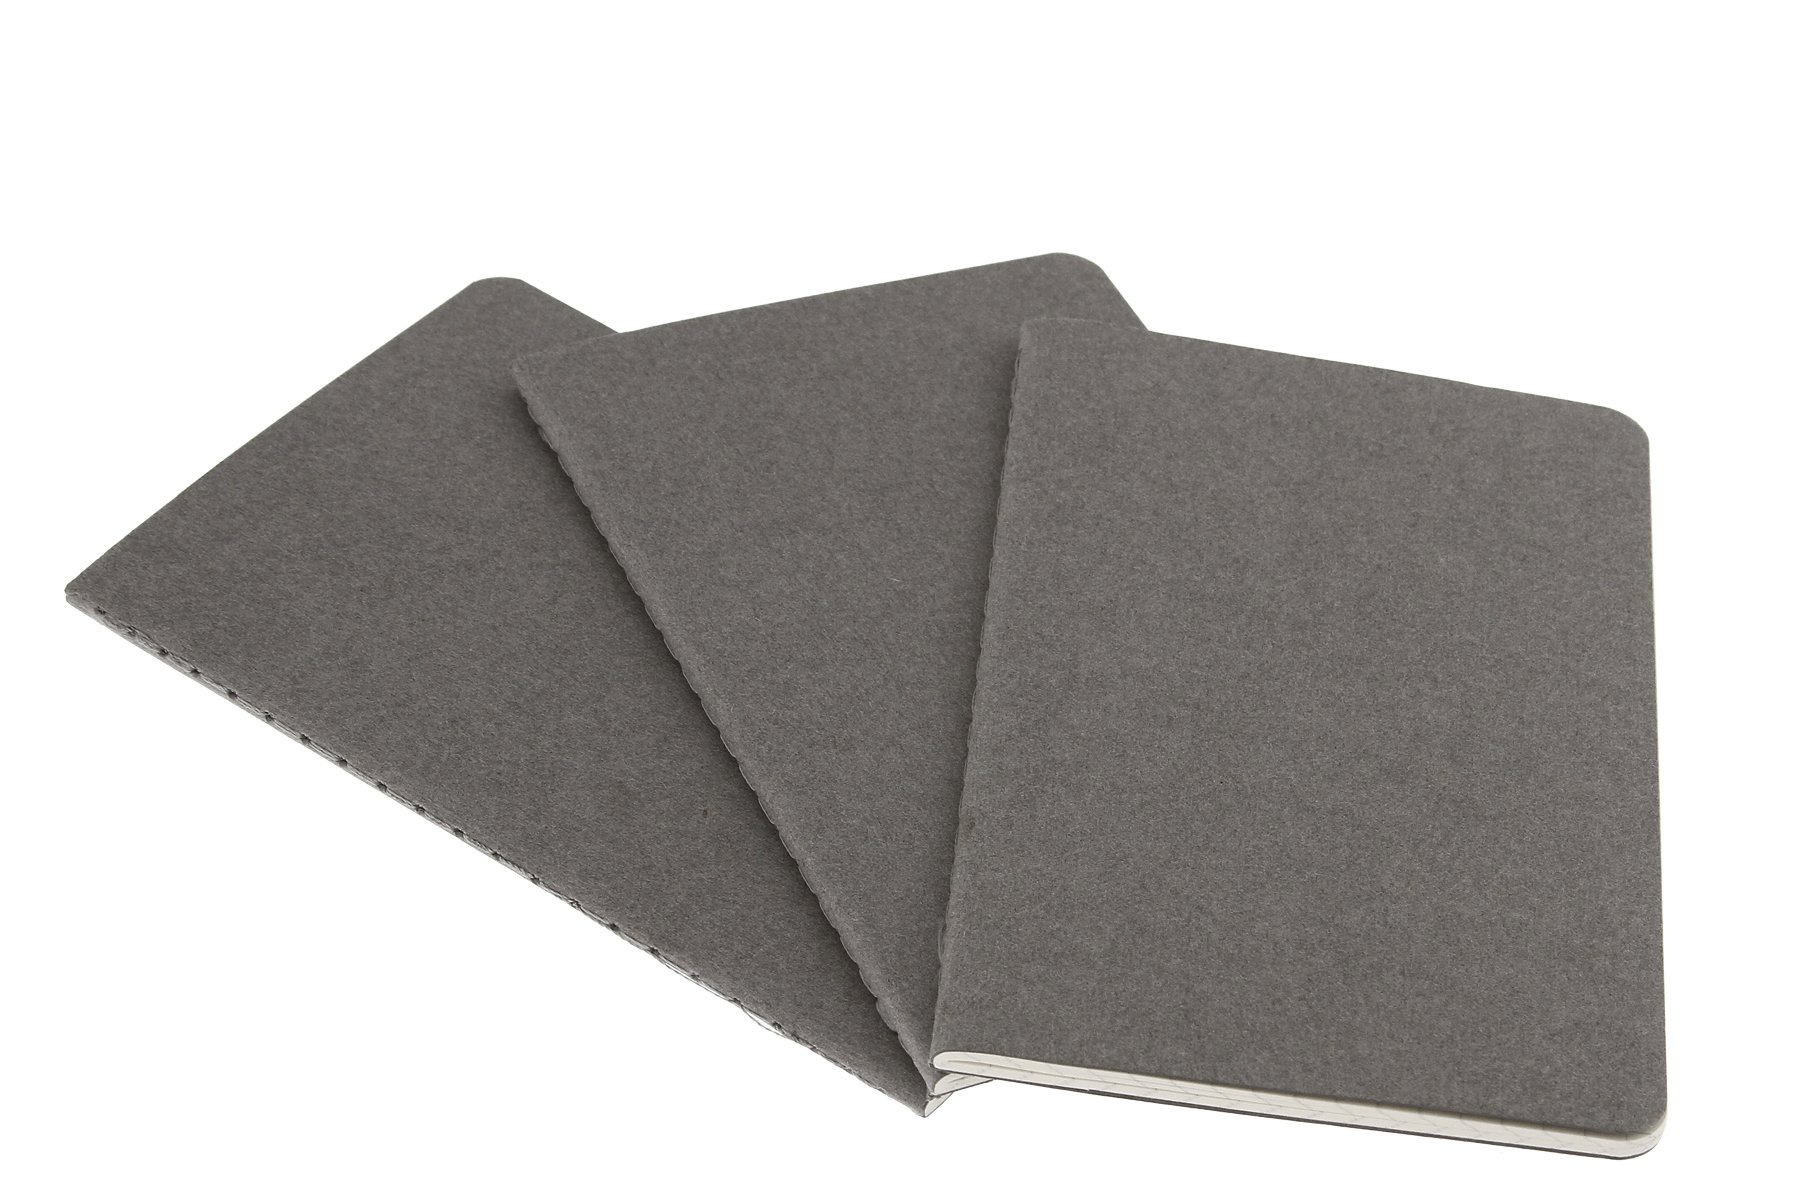 Moleskine cahier notebooks (3) - perfect for the Passport!